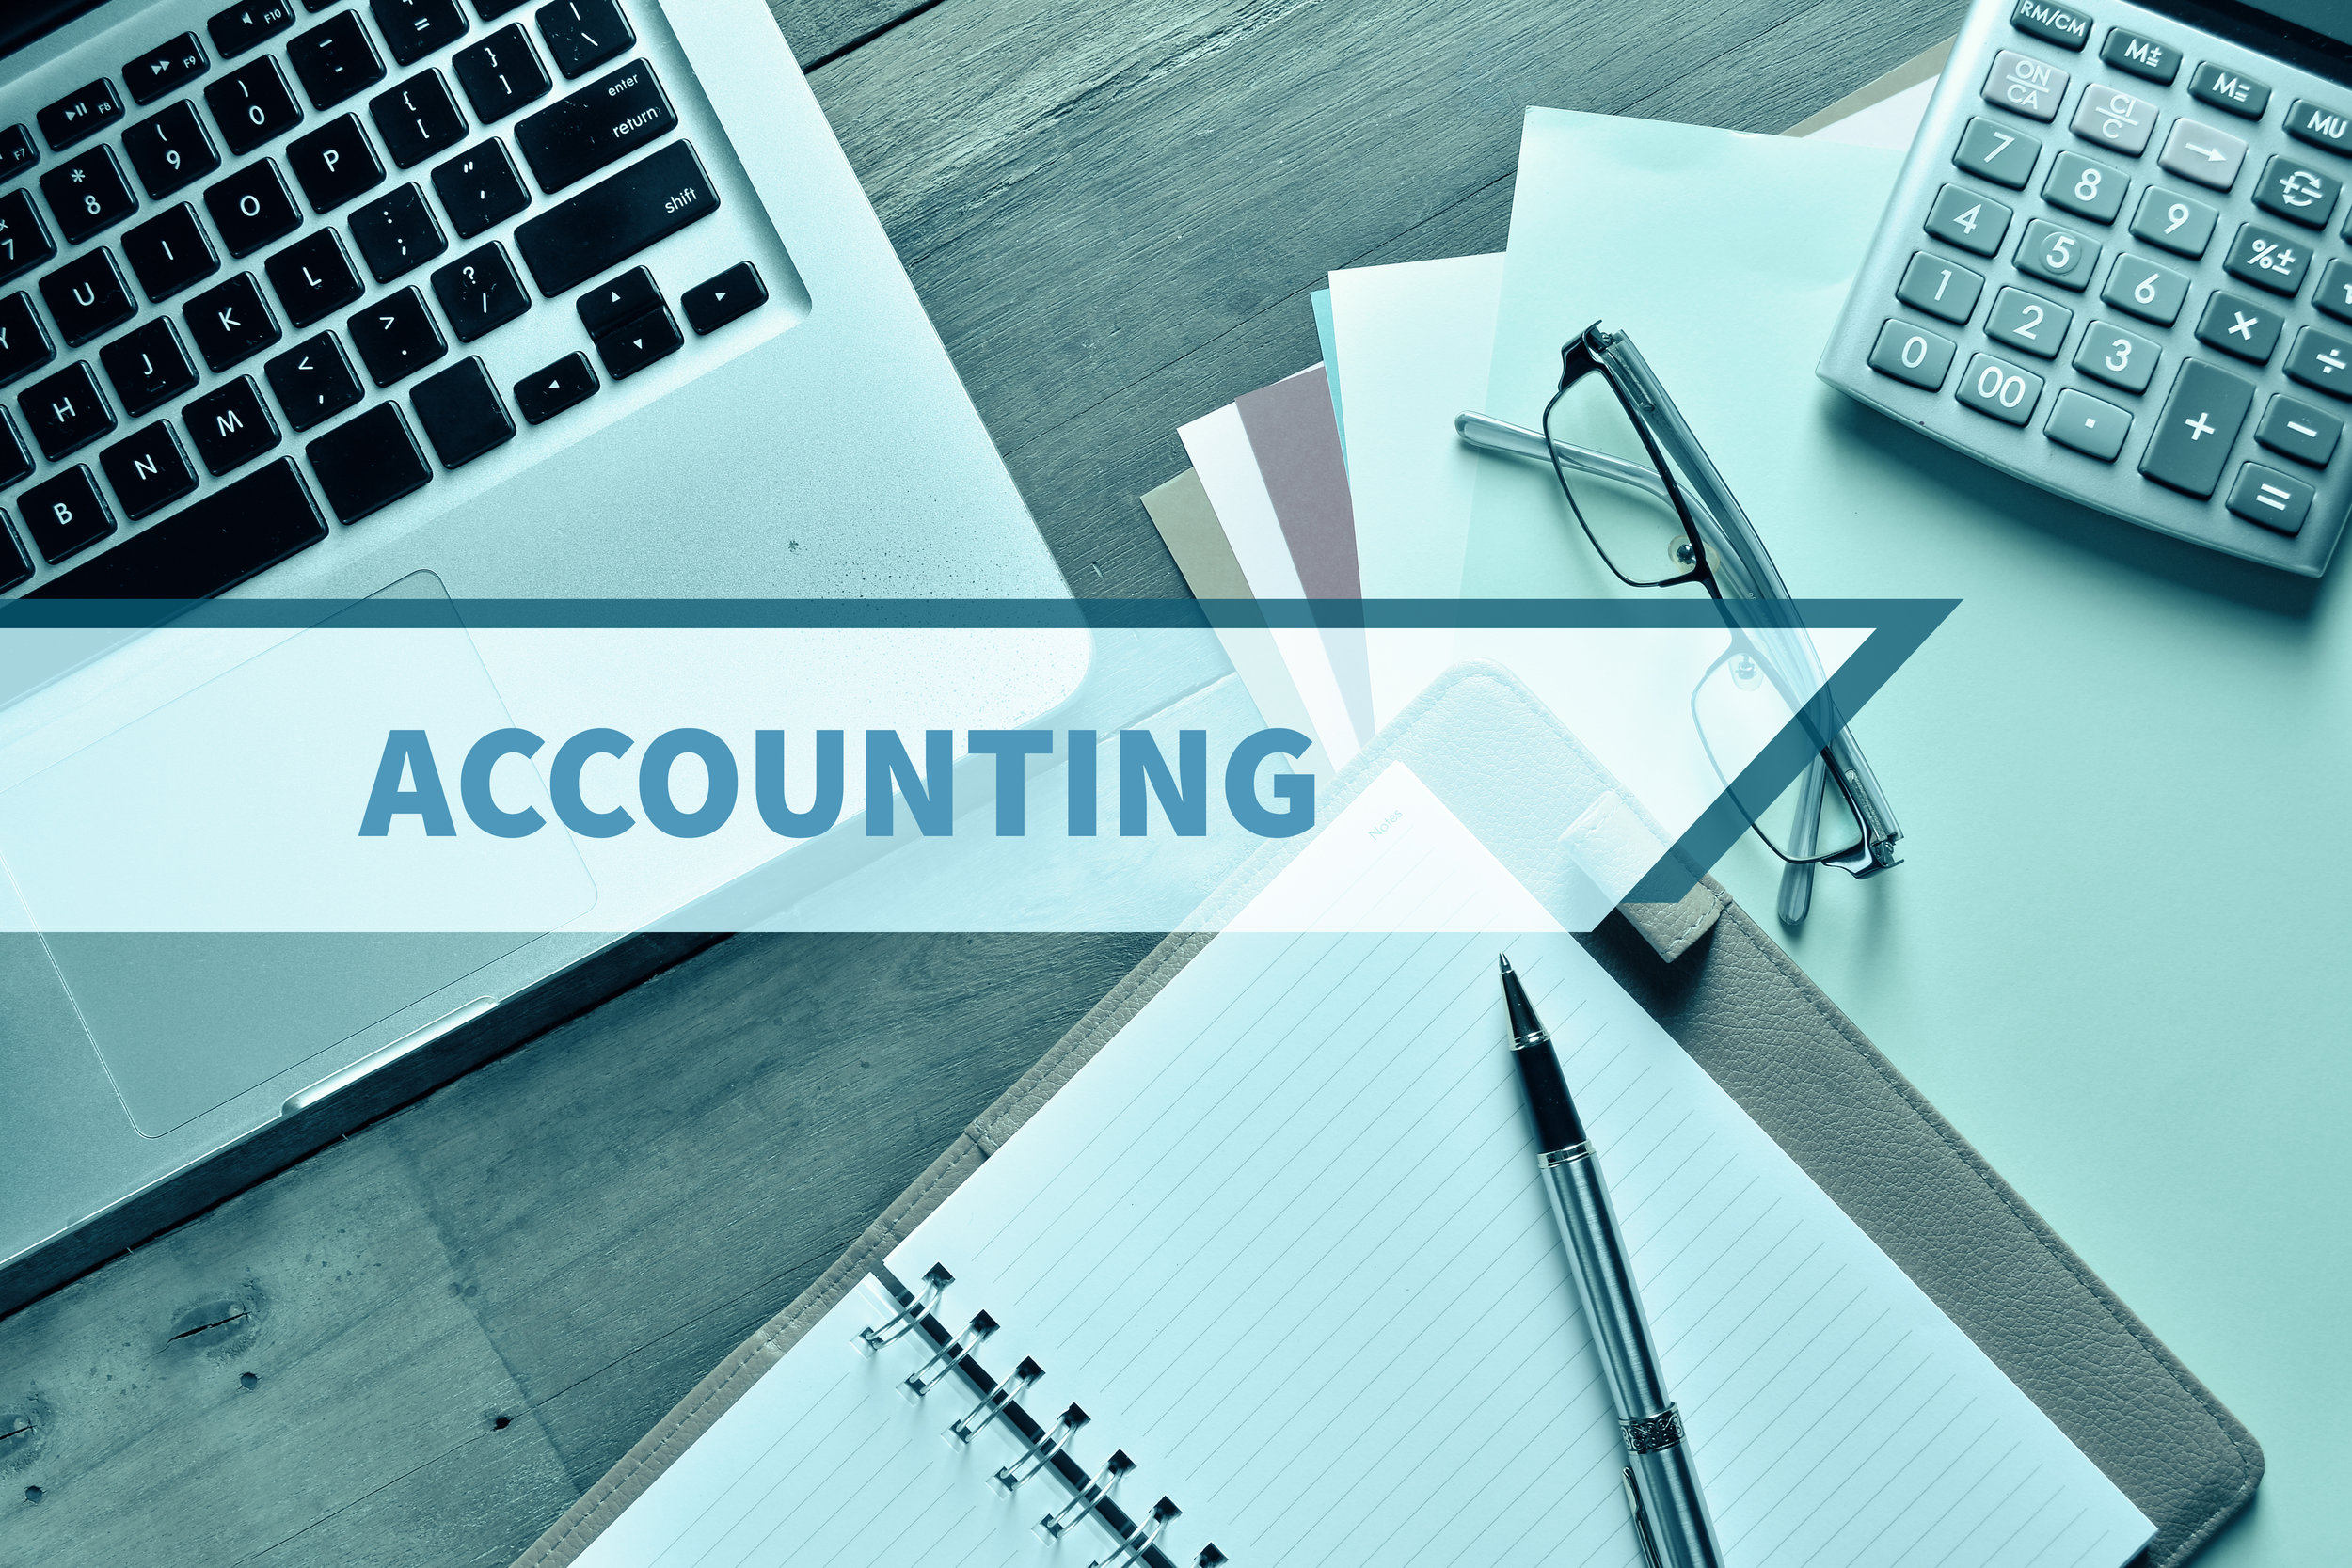 Accounting Services Welcome to LexMondo